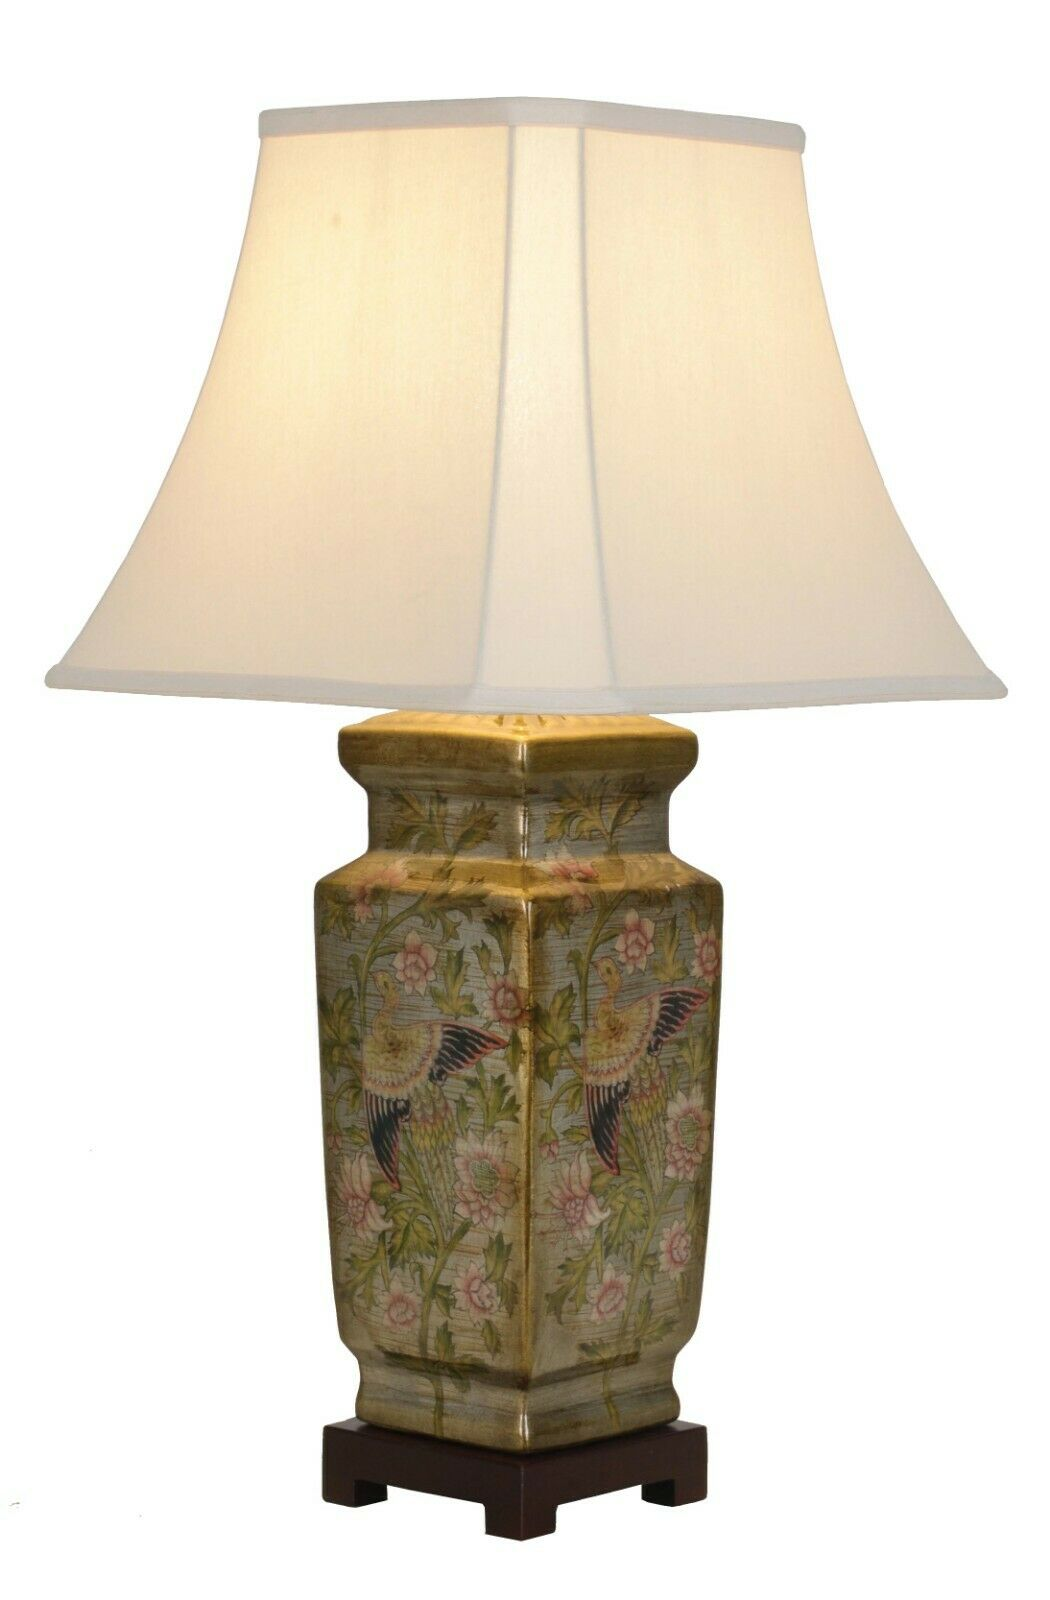 NOW £40 OFF - Genuine Antique Gold Chinese Ceramic Porcelain Table Lamp (M9457)